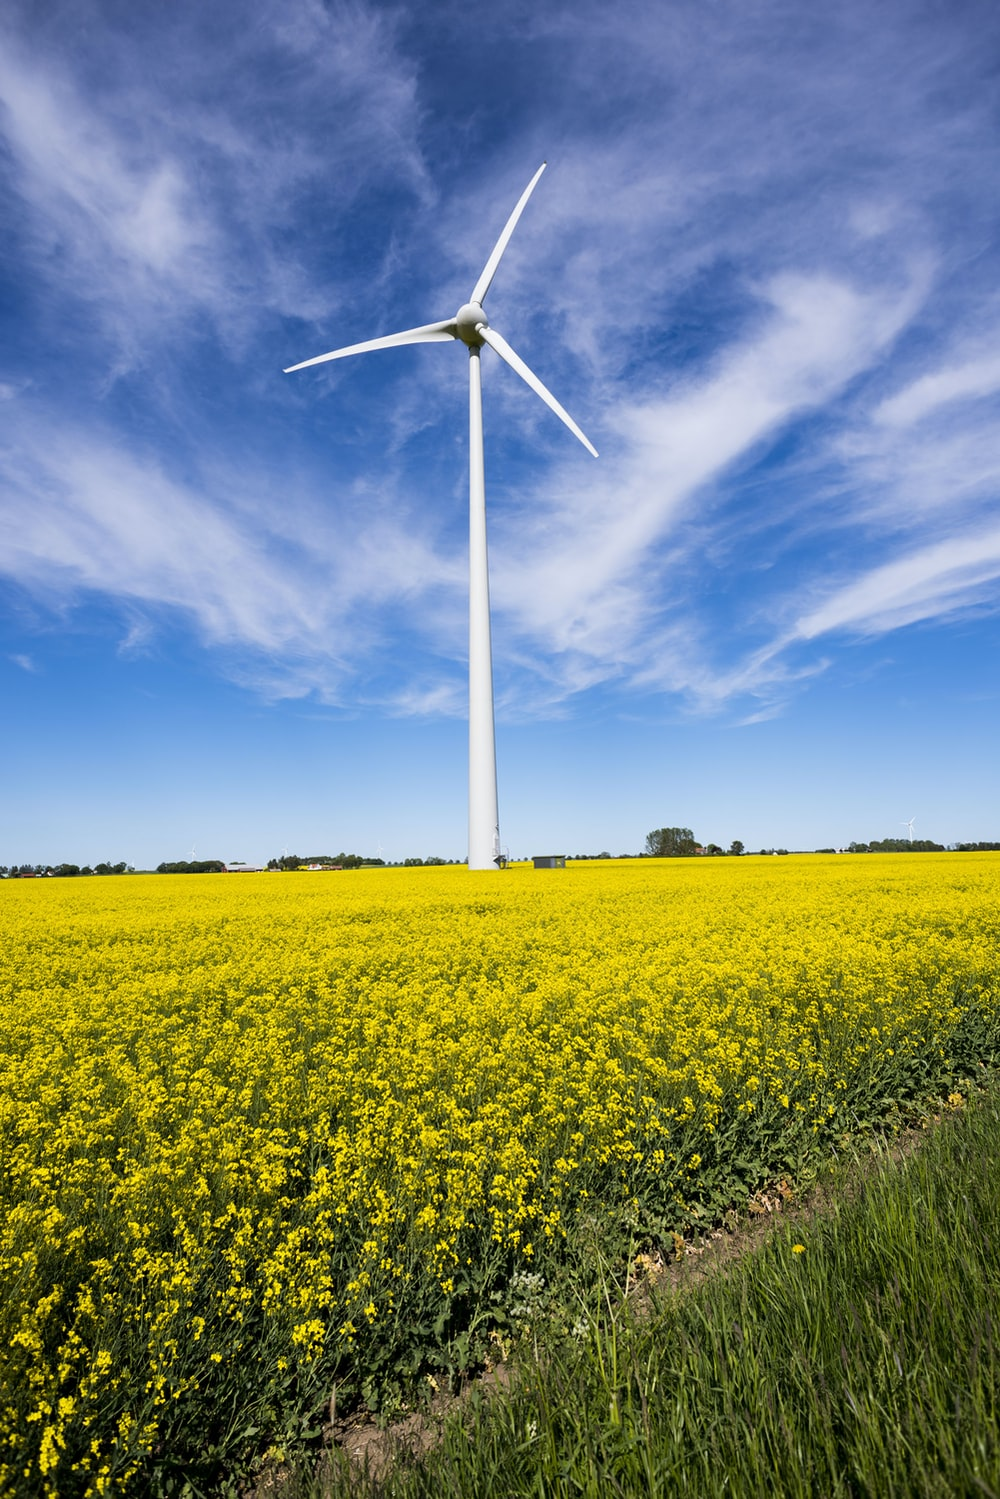 white windmill on yellow-petaled flower field during daytime